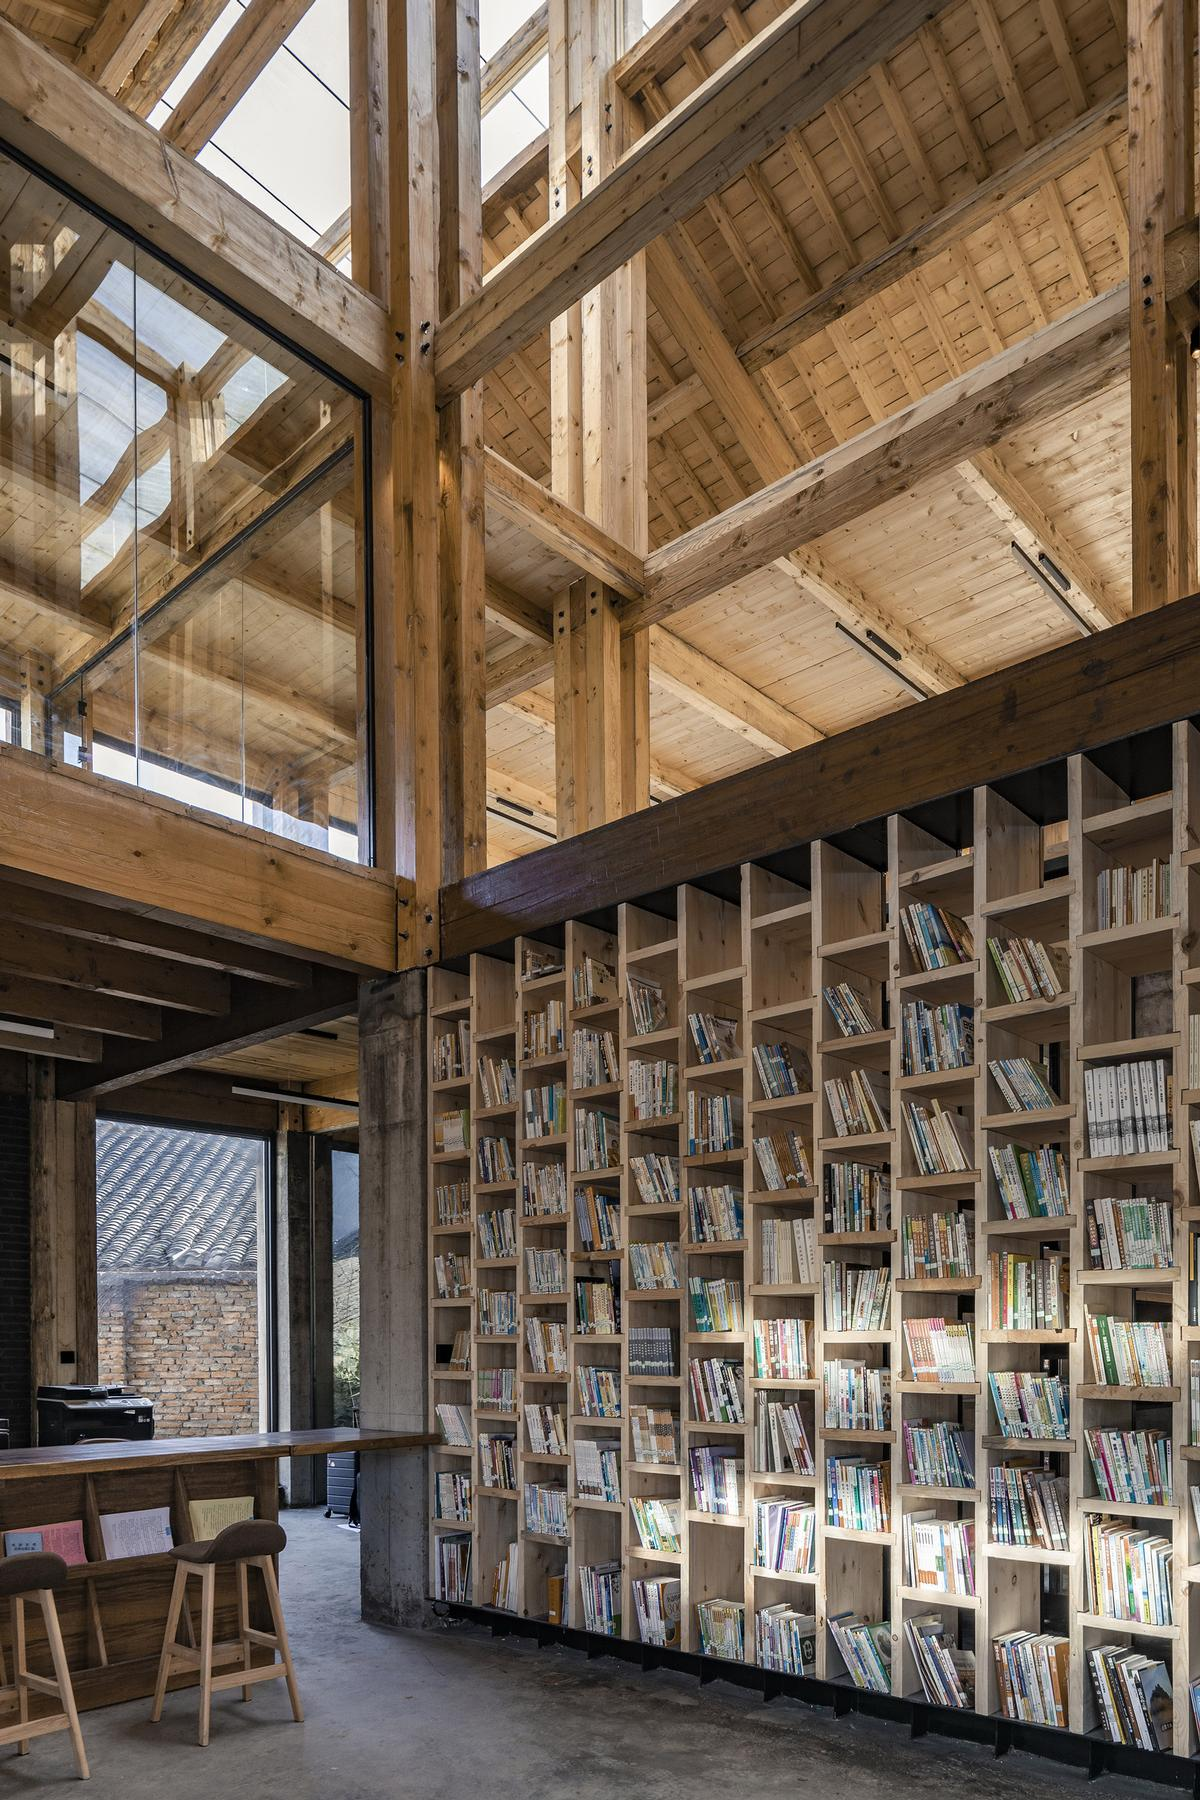 A library area is filled with books and provides spaces to sit / Jin Weiqi